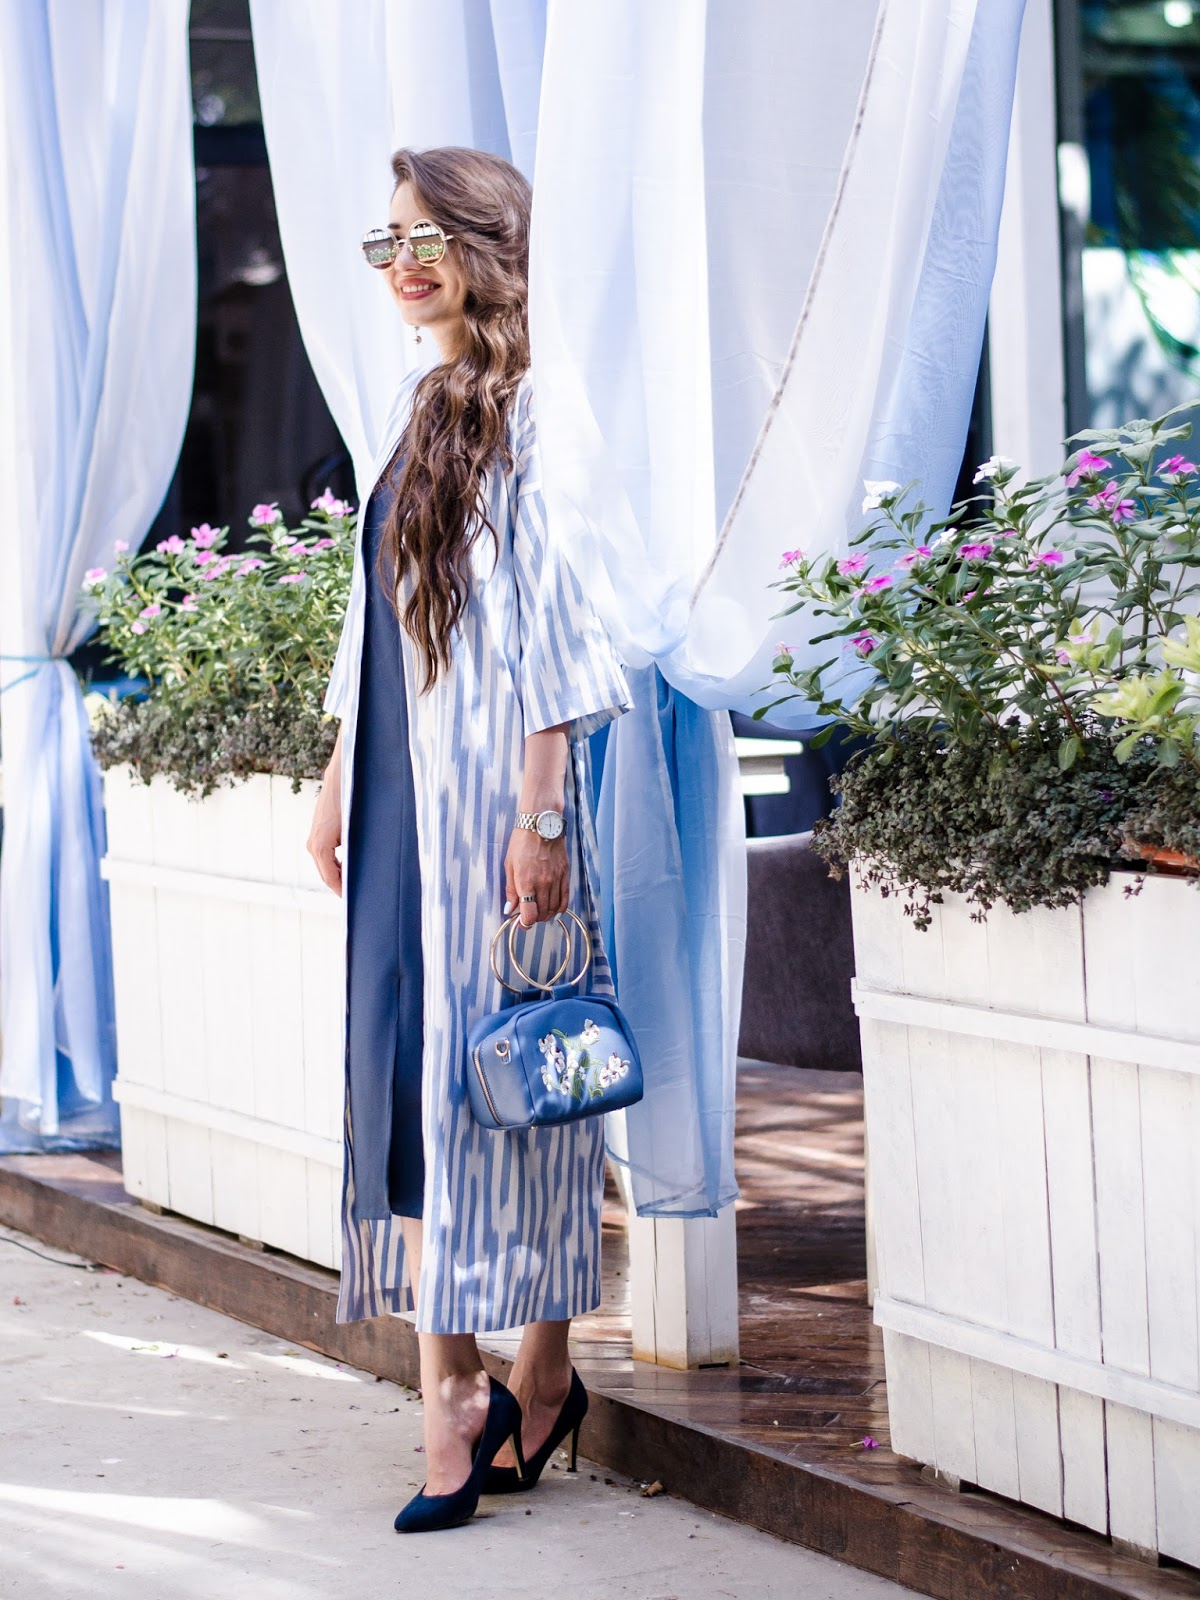 diyorasnotes diyora beta fashion blogger style outfitoftheday lookoftheday blue midi dress uzbek print embroidery bag